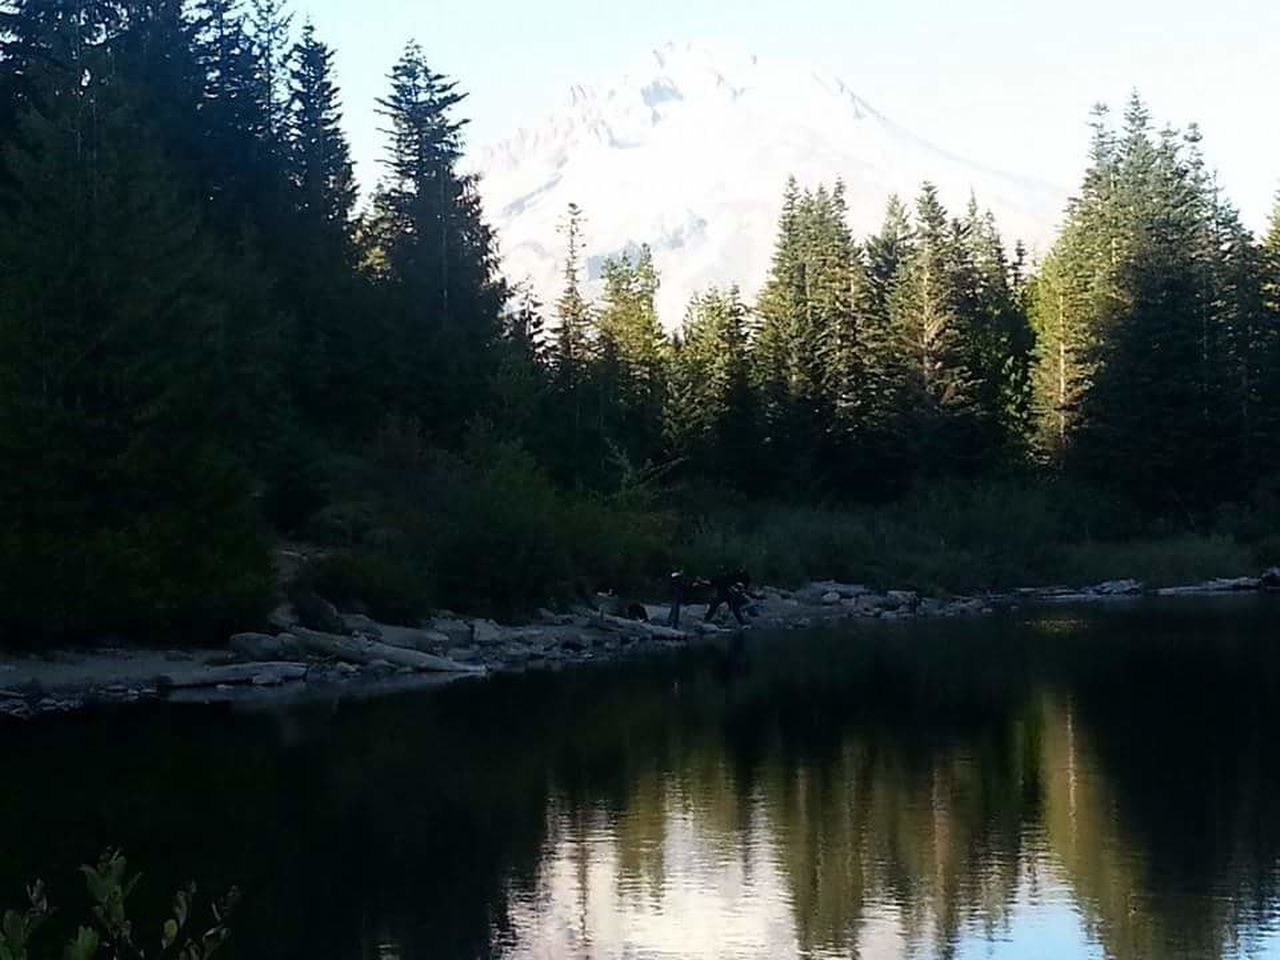 Water Nature Reflection Tree Pine Tree Pinaceae Forest Landscape Scenics Beauty In Nature Lake Sunset Sky Reflection Lake Tranquility Outdoors Cold Temperature No People Lush - Description Day Tranquility Natural Parkland Mirror Lake HIKES OUTDOOR Tranquil Scene